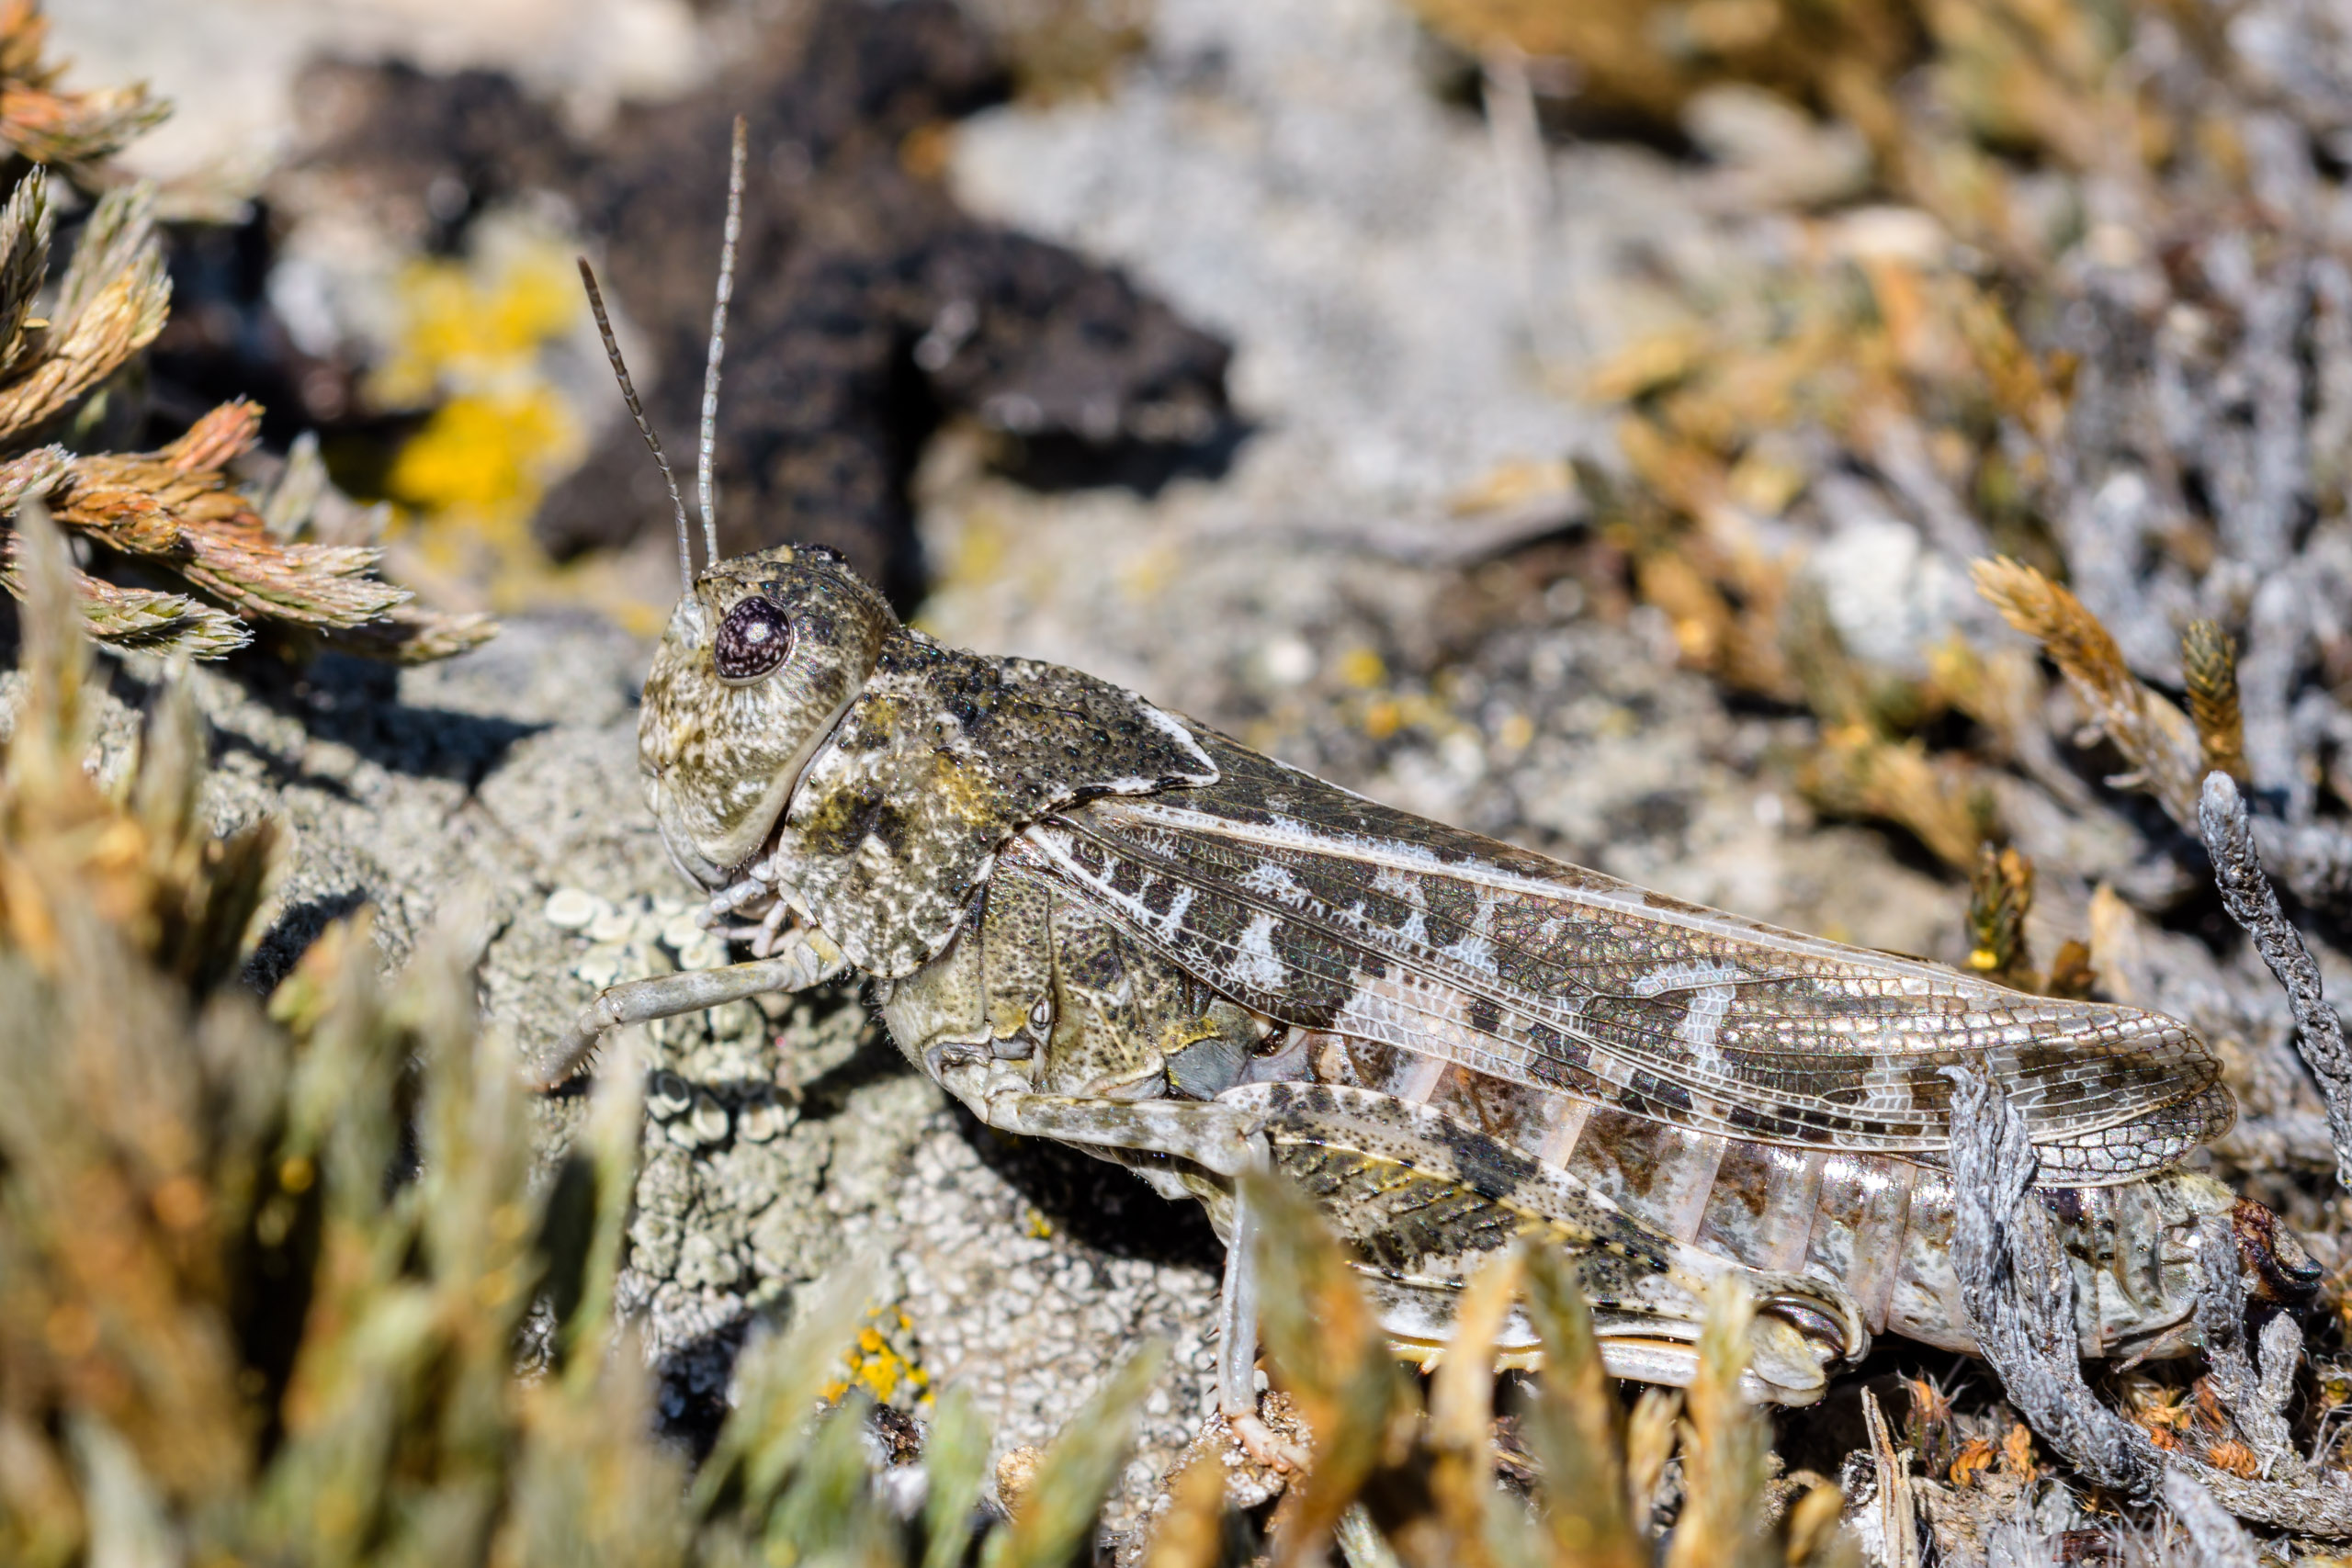 Mottled Sand Grasshopper - Spharagemon collare